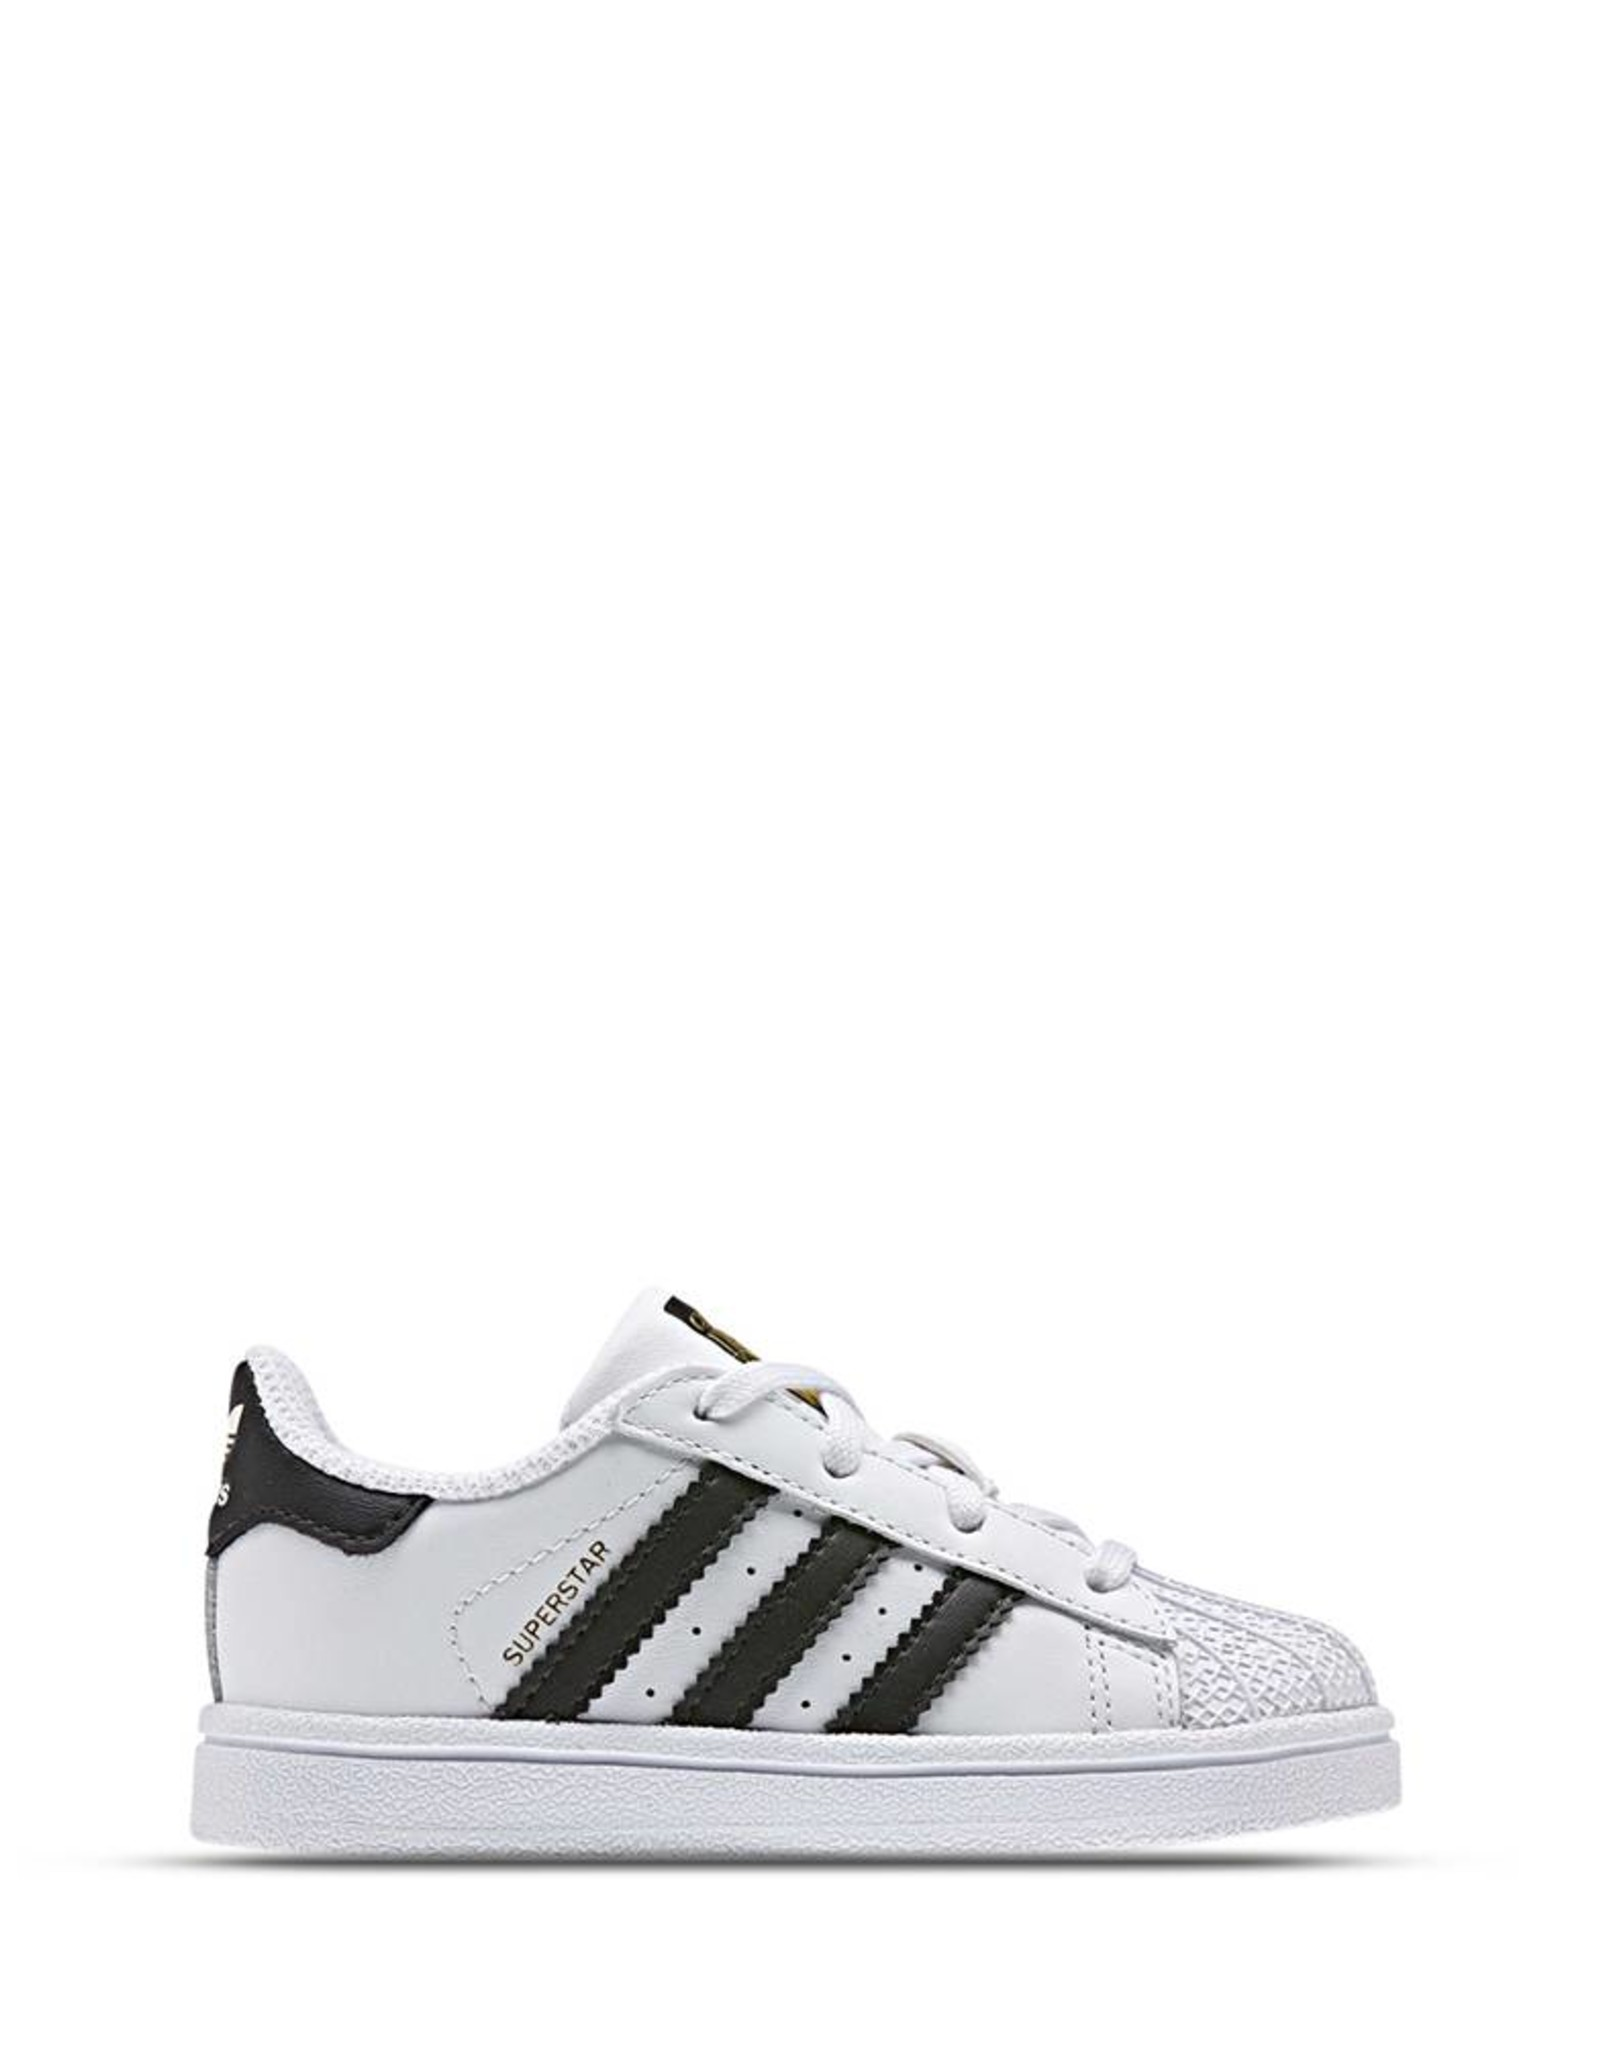 ADIDAS SUPERSTAR WHITE/BLACK KIDS